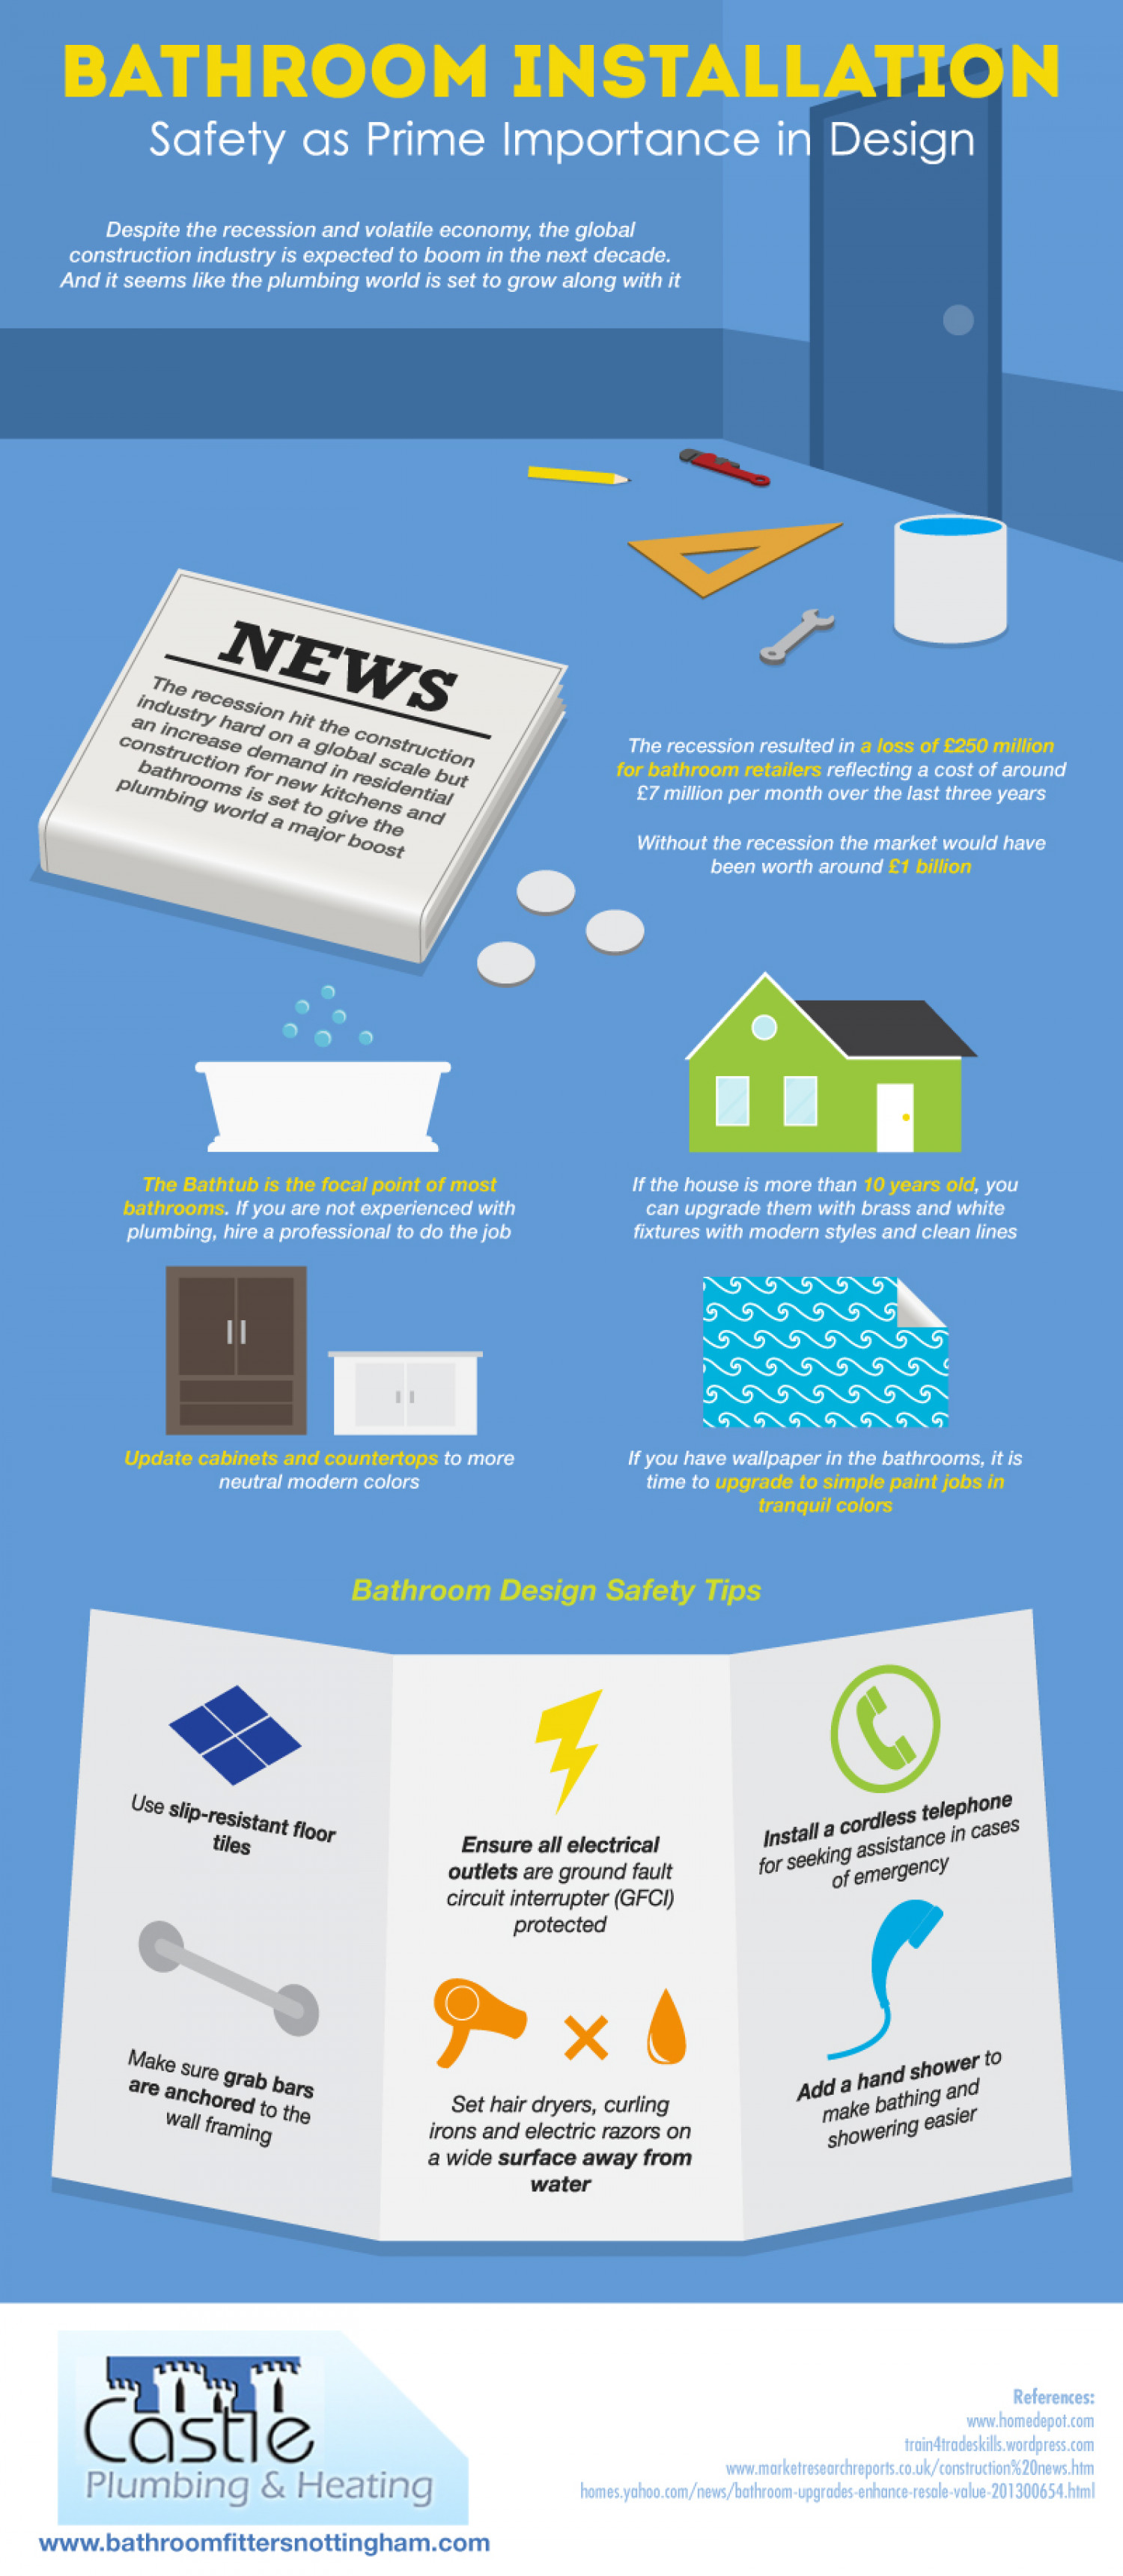 Bathroom Installation: Safety as Prime Importance in Design Infographic